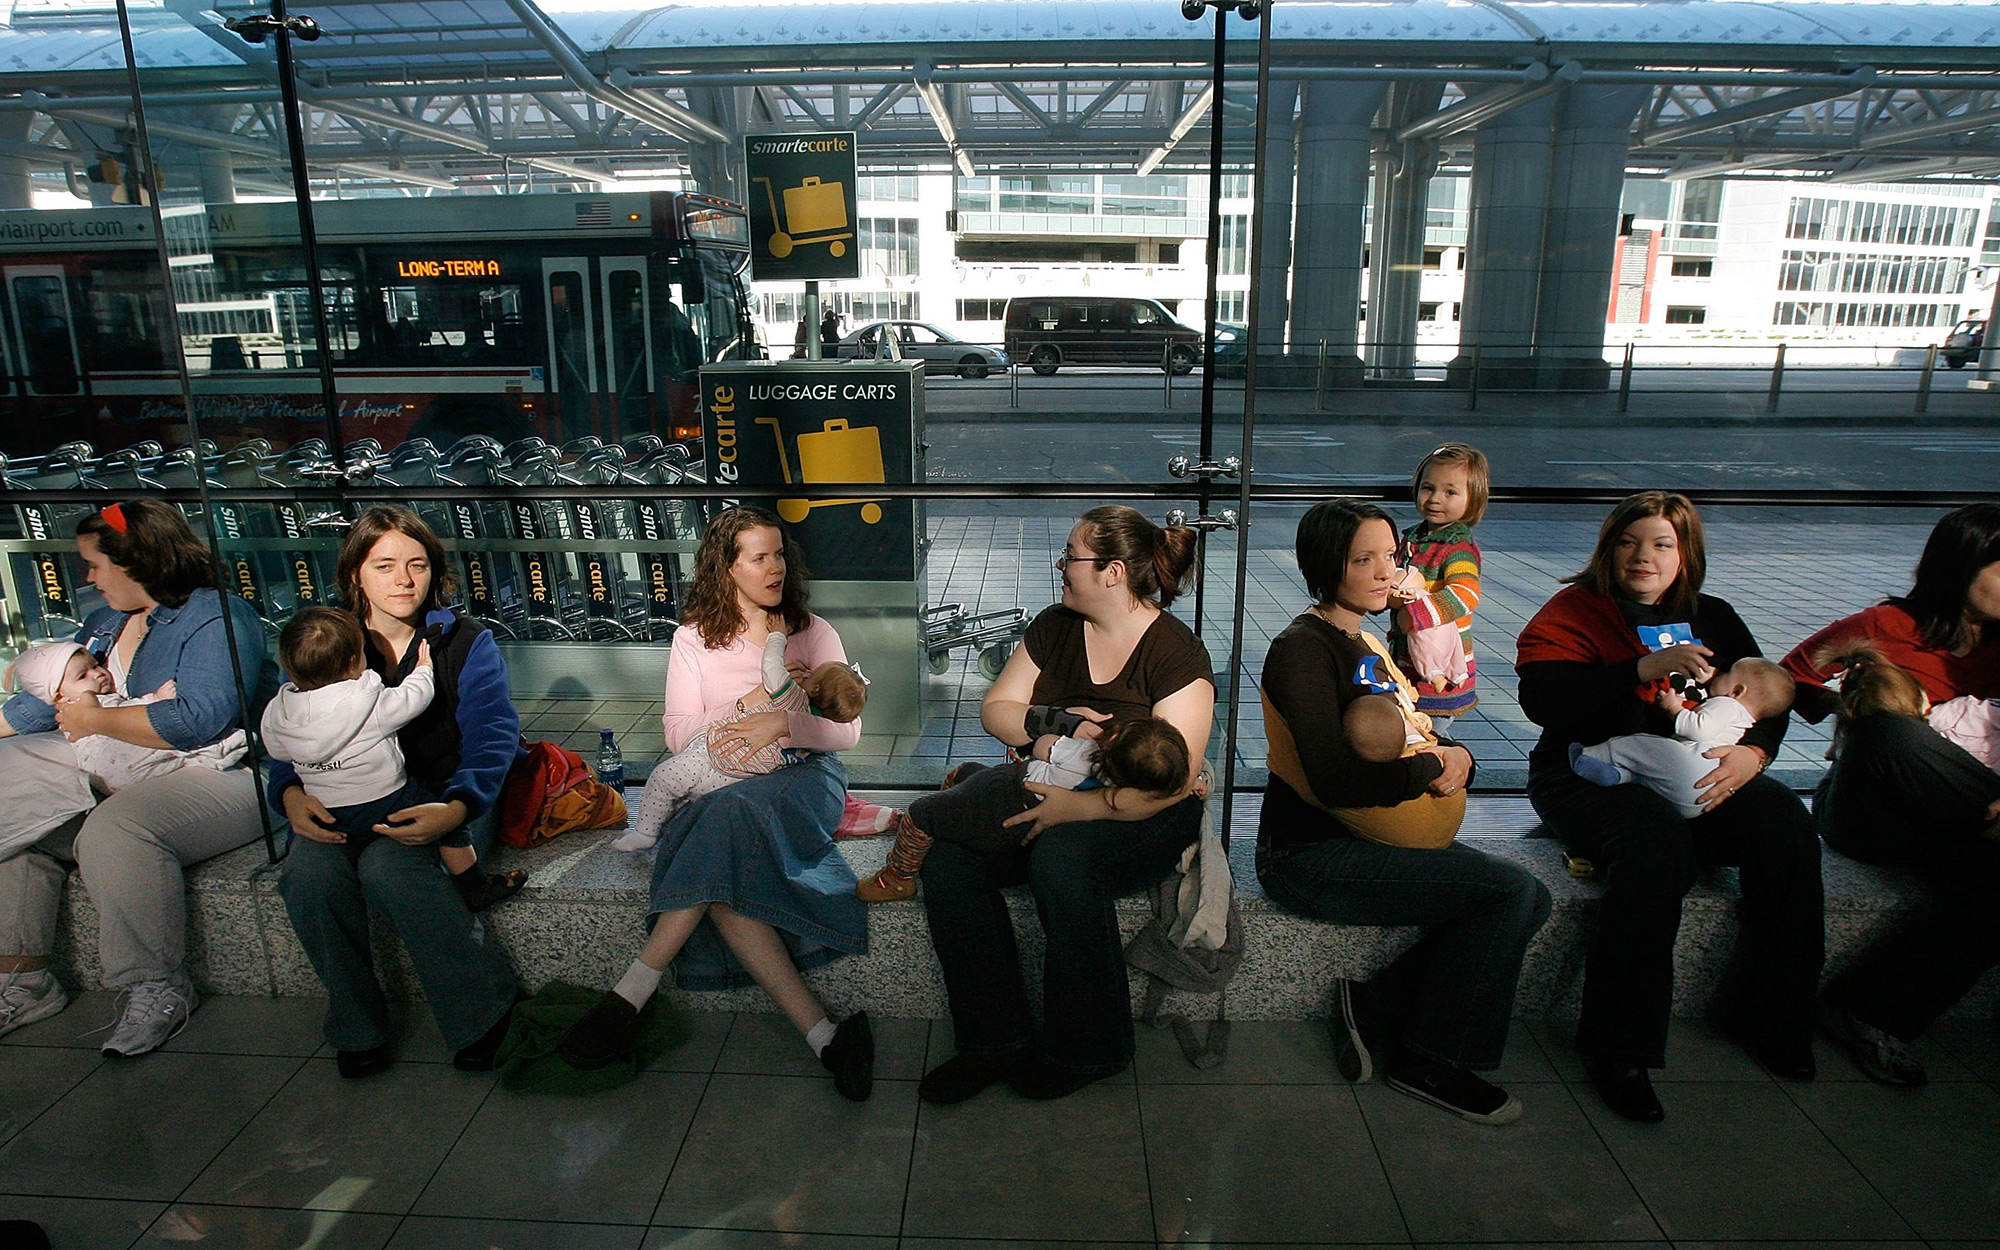 LINTHICUM, MD - NOVEMBER 21:   Mothers nurse their babies during a Nurse In protest at Baltimore-Washington International Thurgood Marshall Airport November 21, 2006 in Linthicum, Maryland. The mothers were protesting as a result of a prior incident in wh